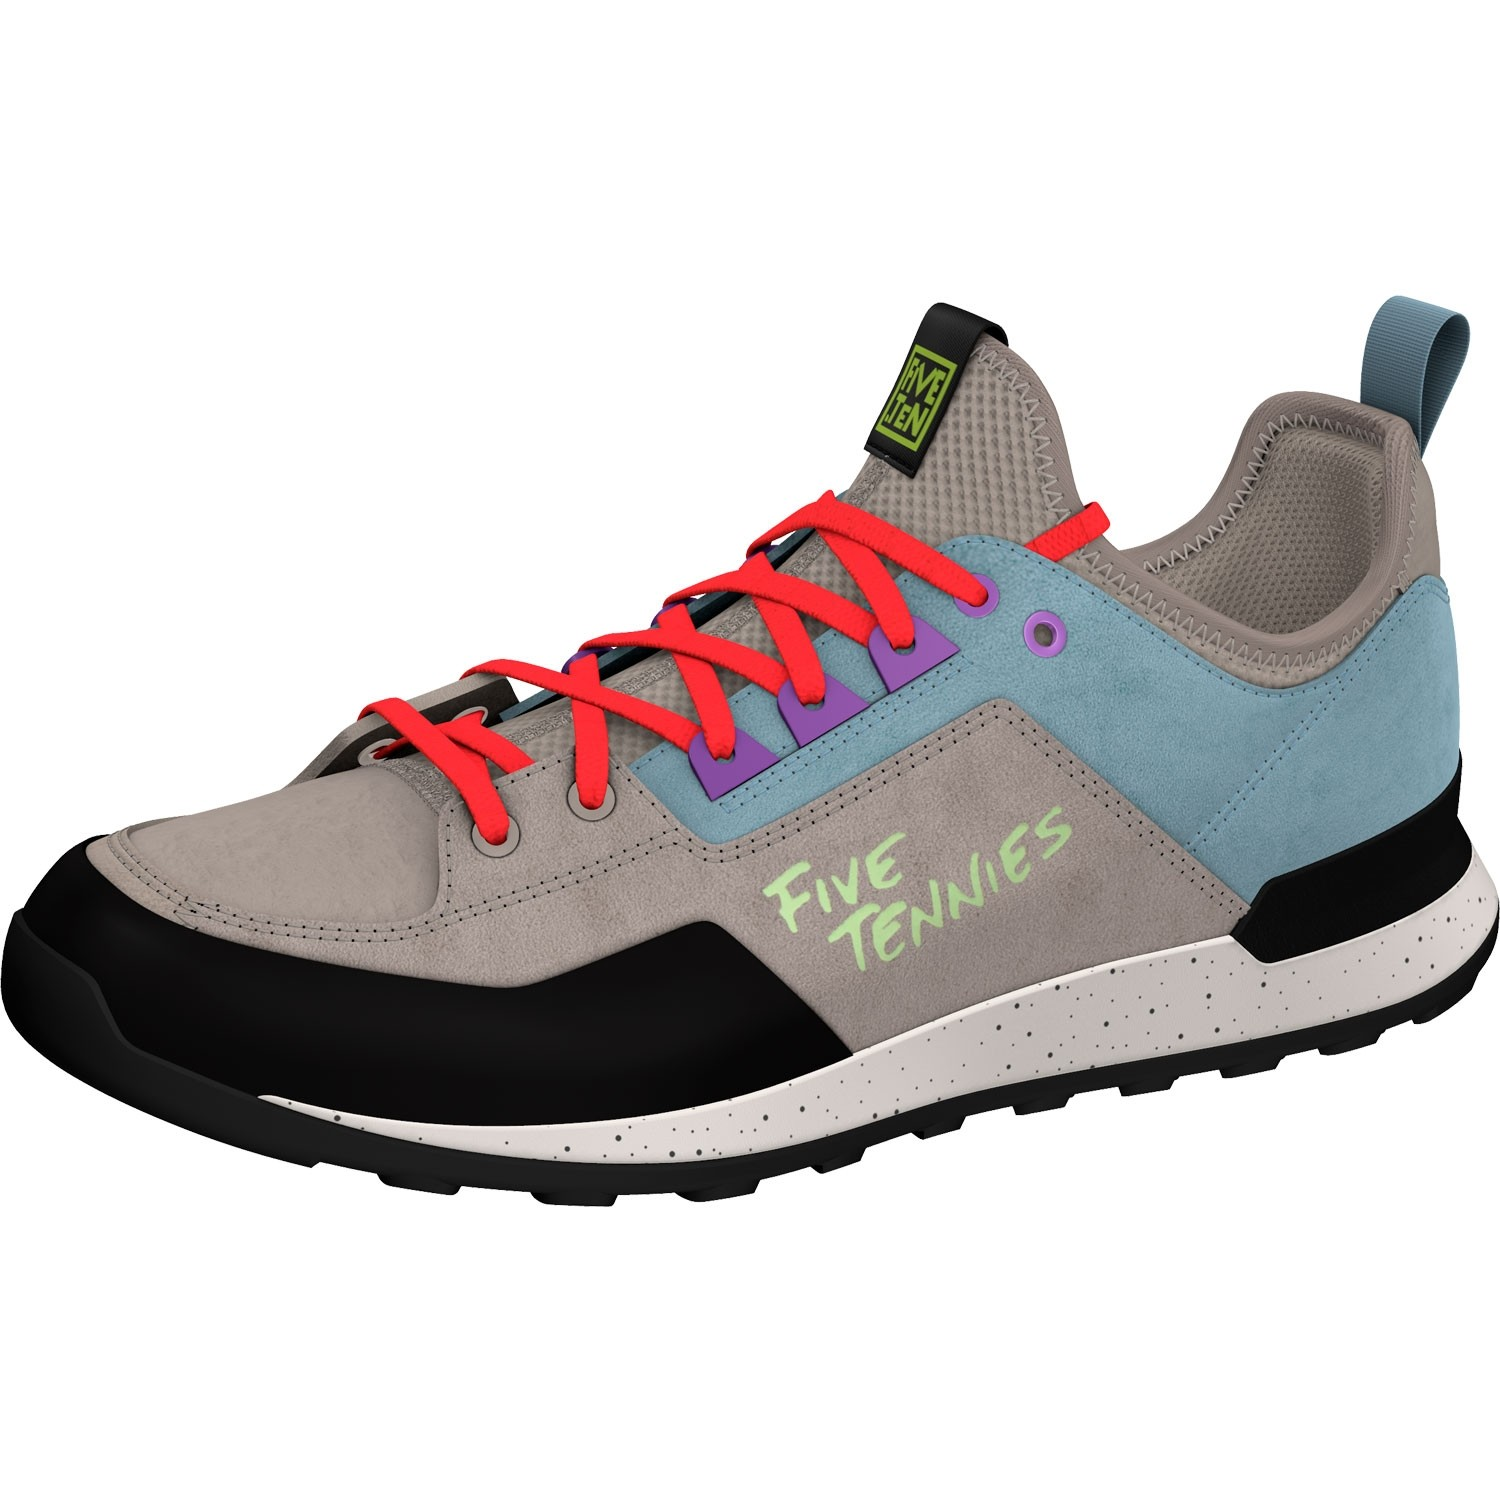 Five Ten Five Tennie Women's Approach Shoe - Light Brown/Ash Grey/Active Purple